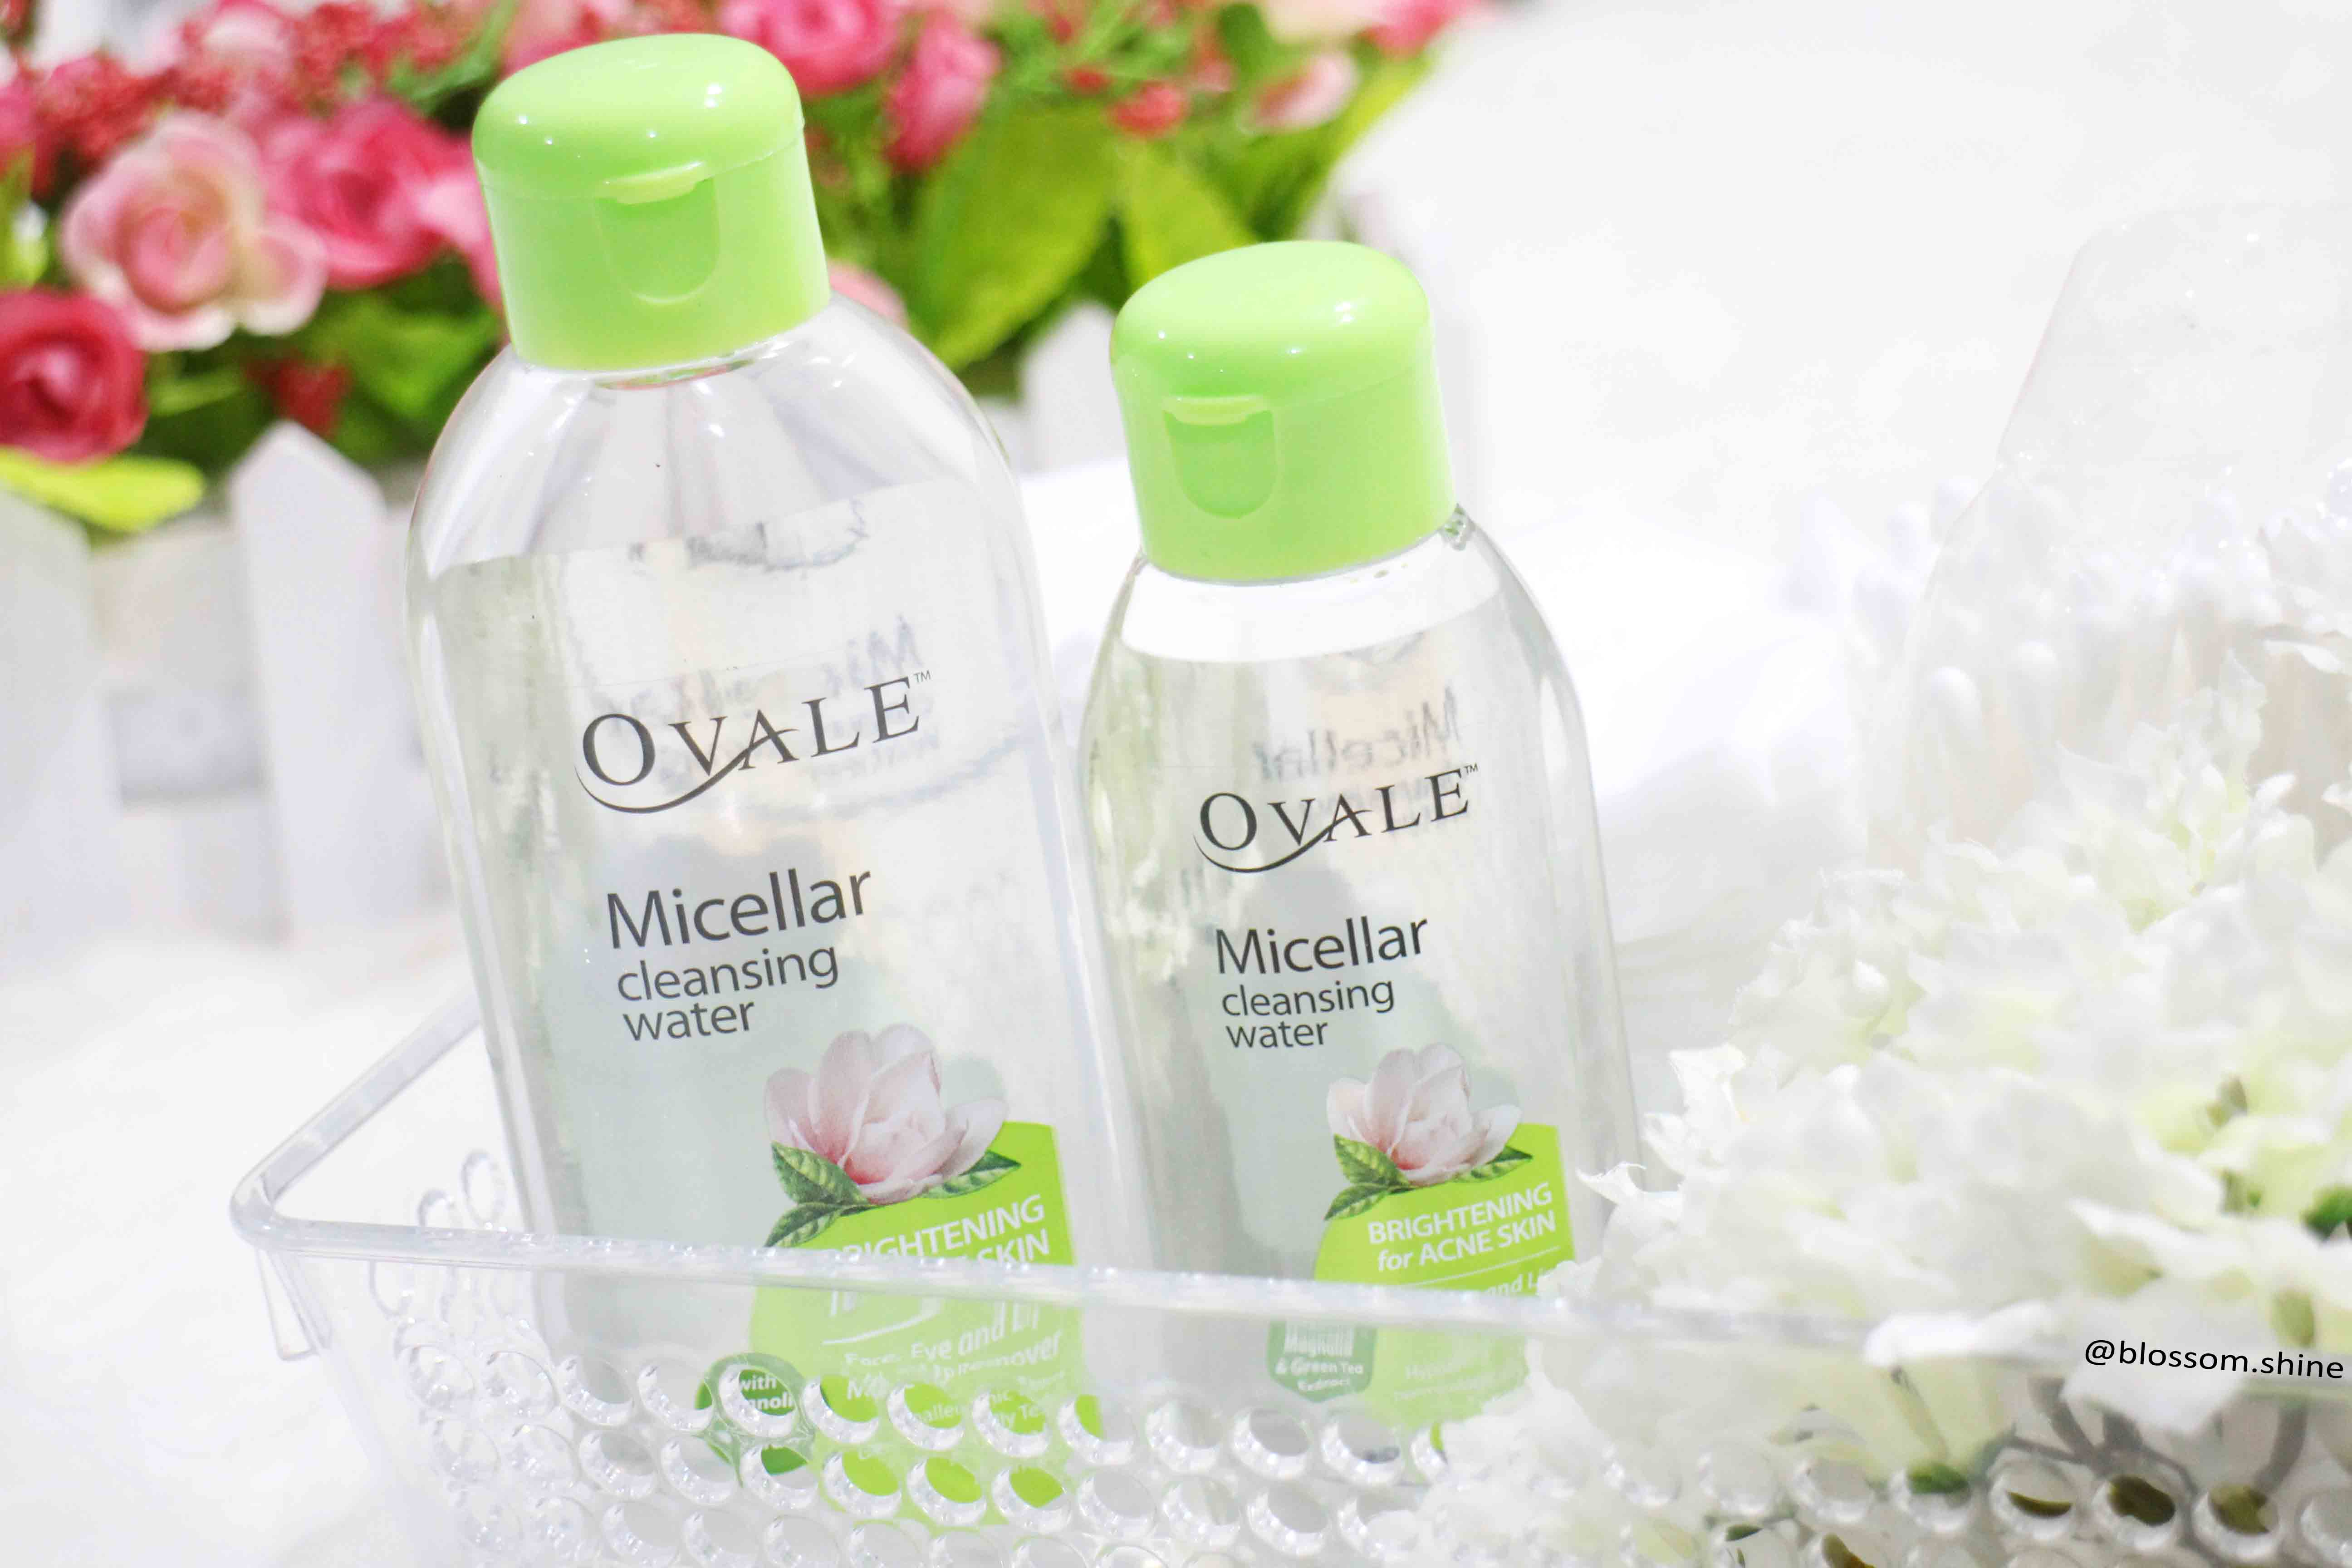 Ovale Micellar Cleansing Water [Skincare Review]